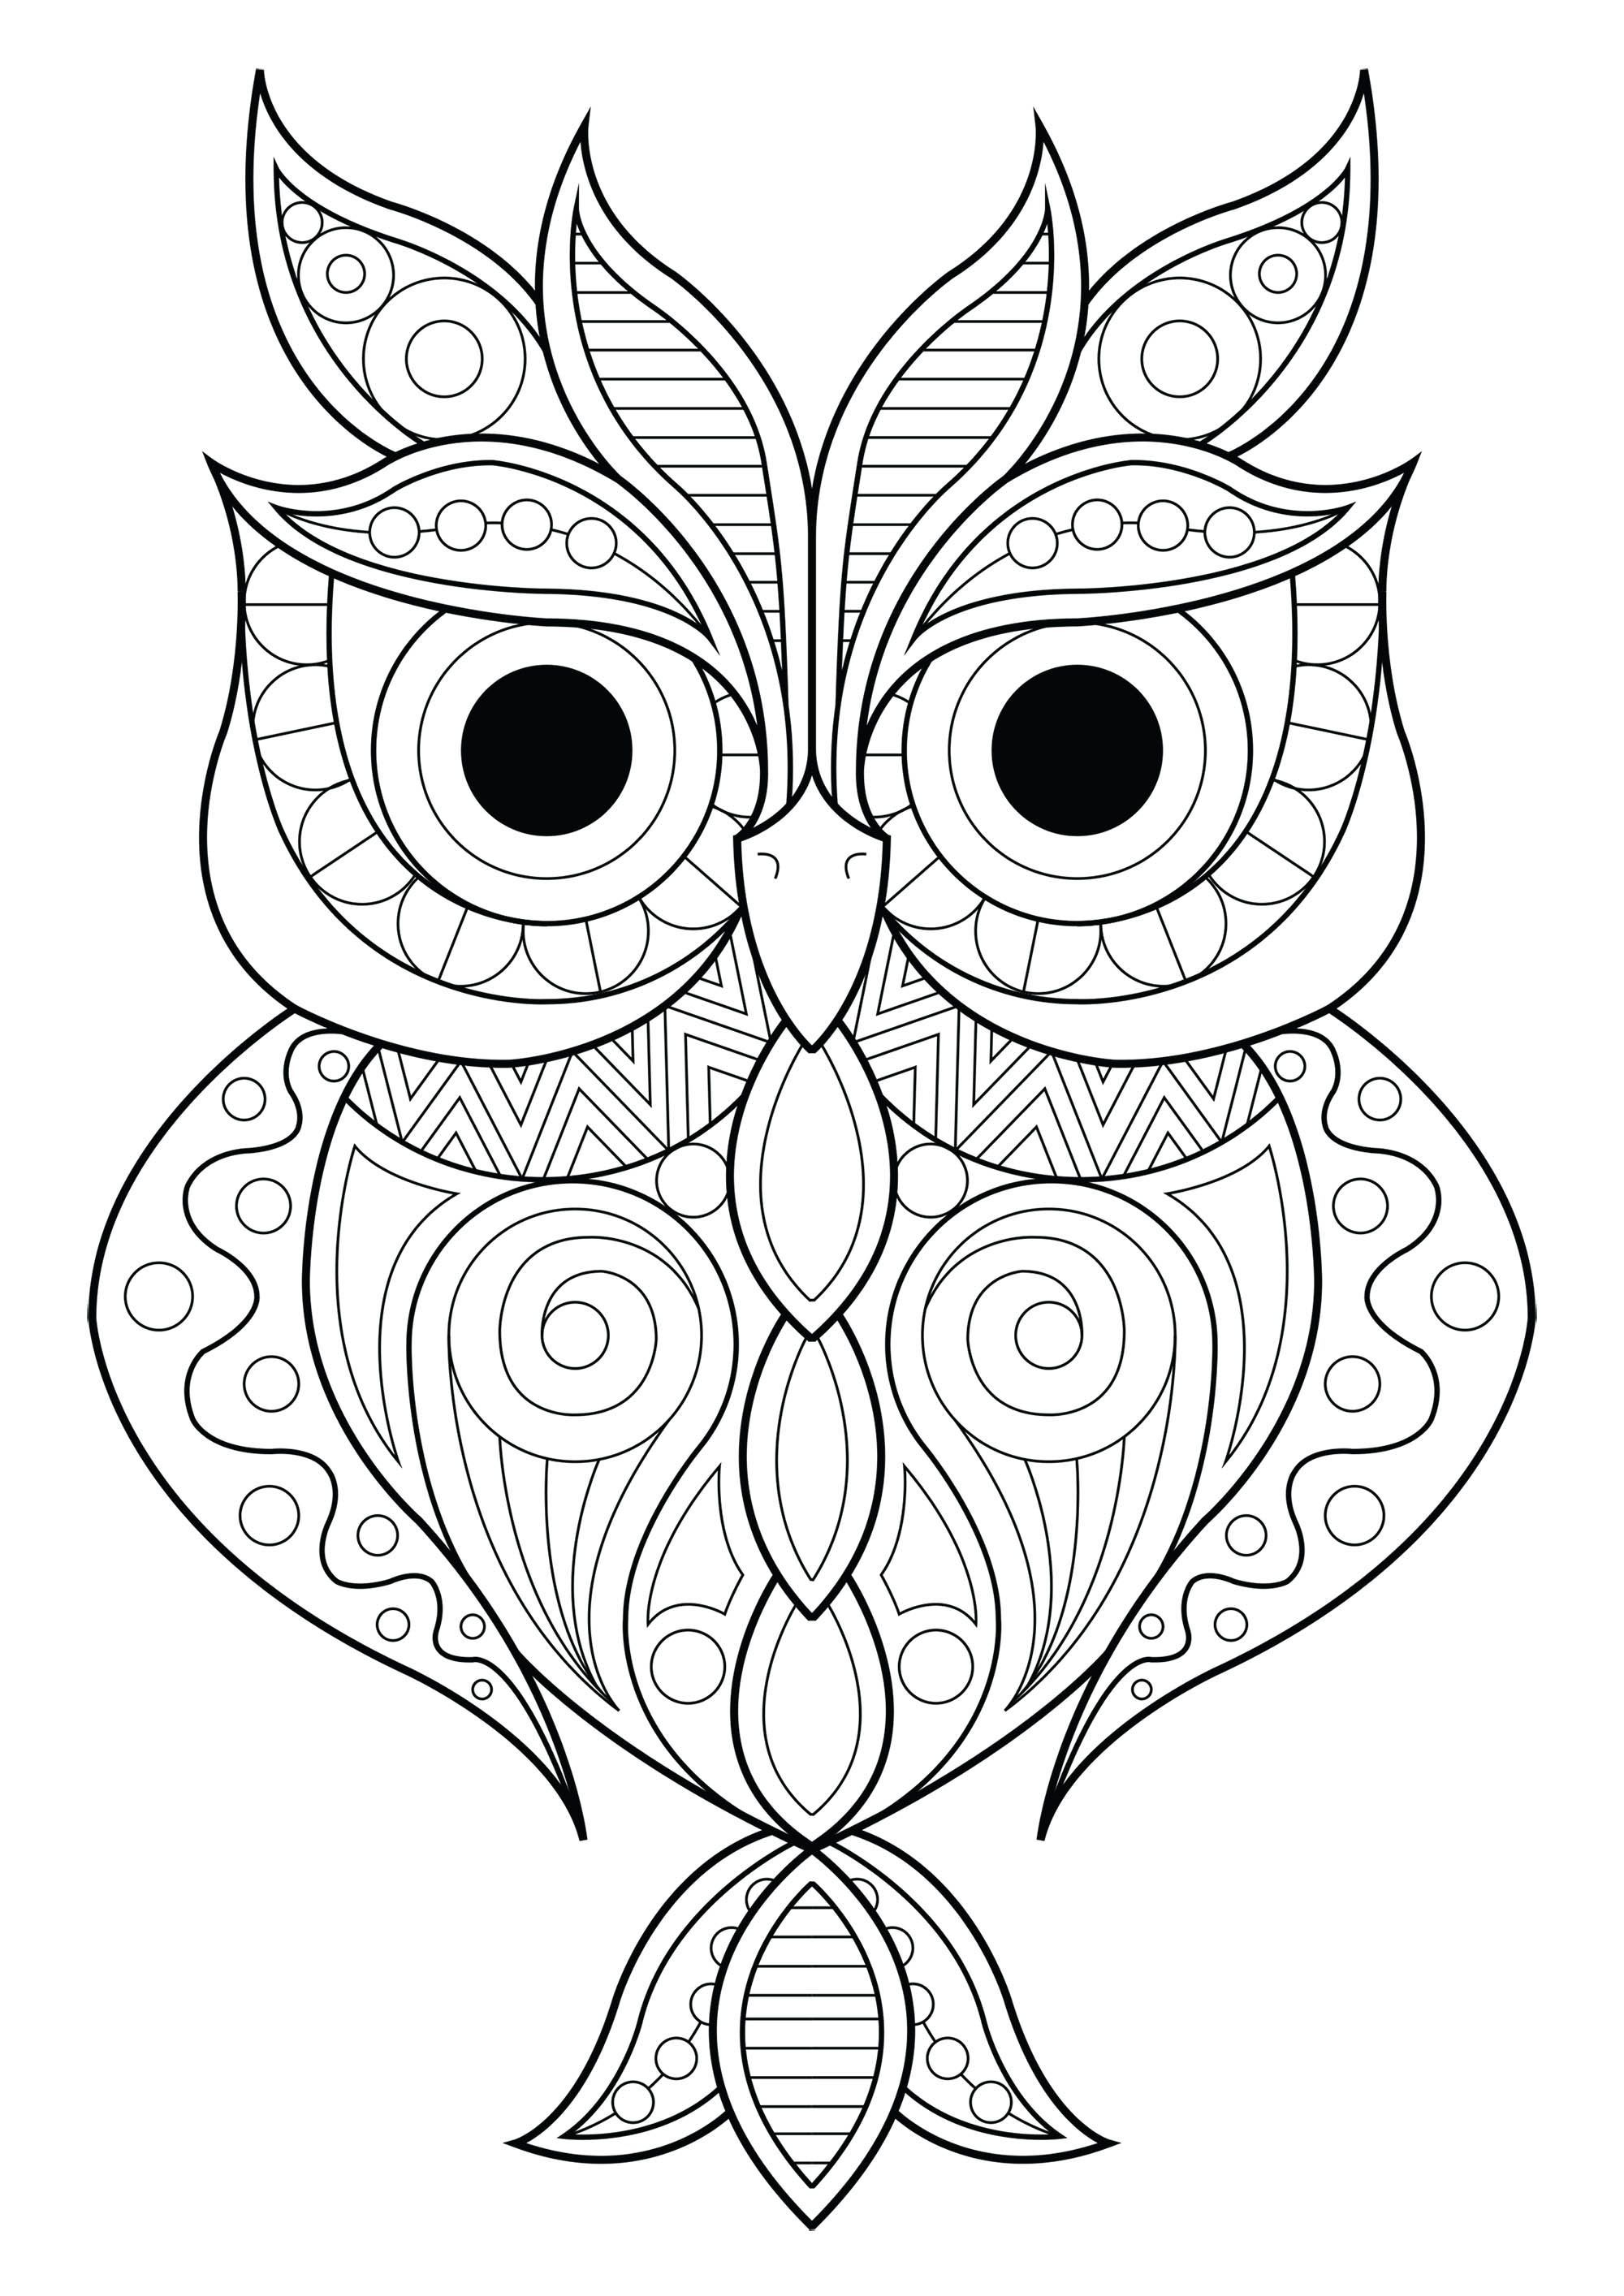 Owl Simple Patterns 2 Owls Coloring Pages For Adults Just